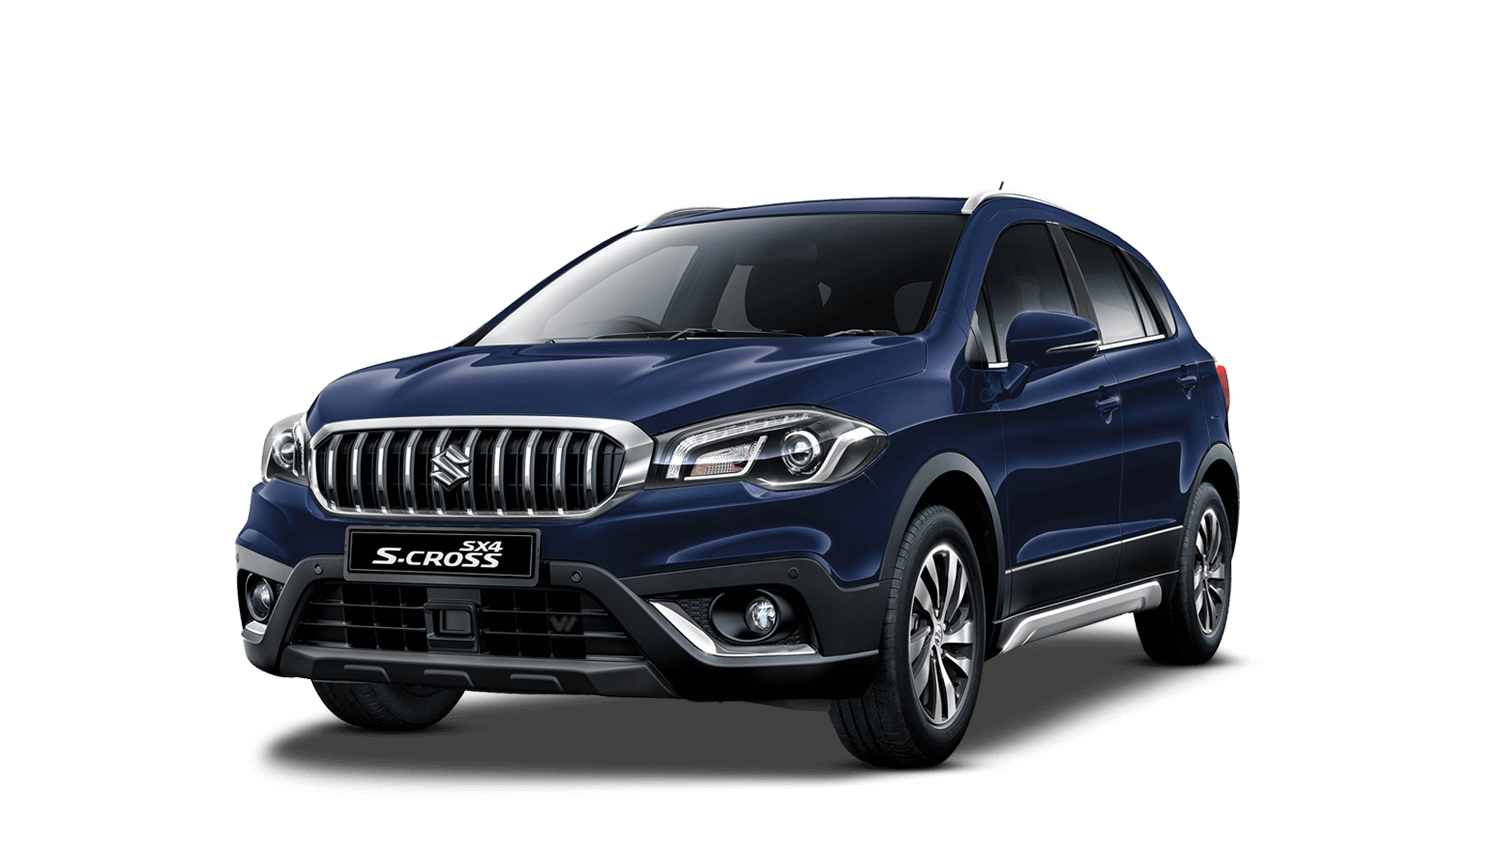 S4X S-Cross Leasing Offers